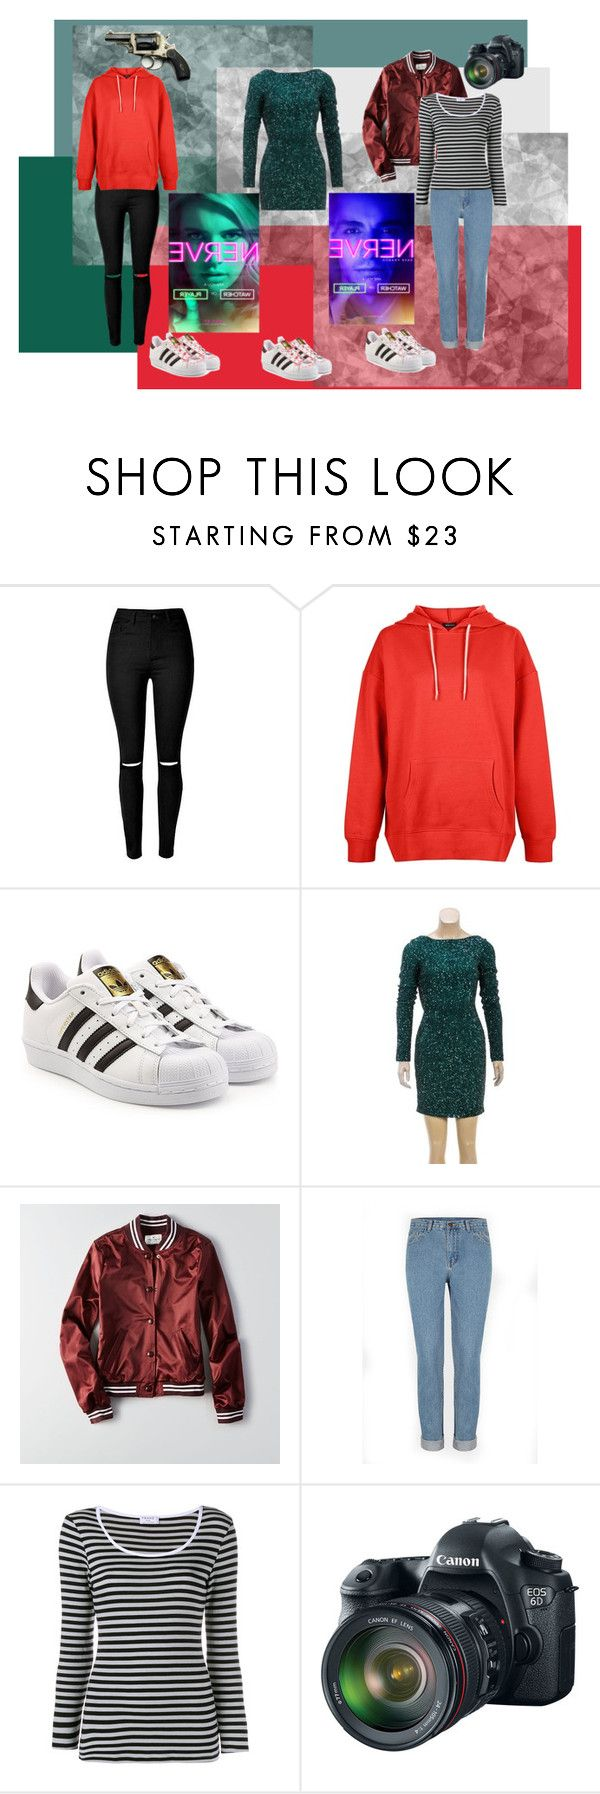 """Vee's Outfits (Nerve)"" by khyligordon on Polyvore featuring New Look, adidas Originals, Oday Shakar, American Eagle Outfitters, Frame Denim and Eos"